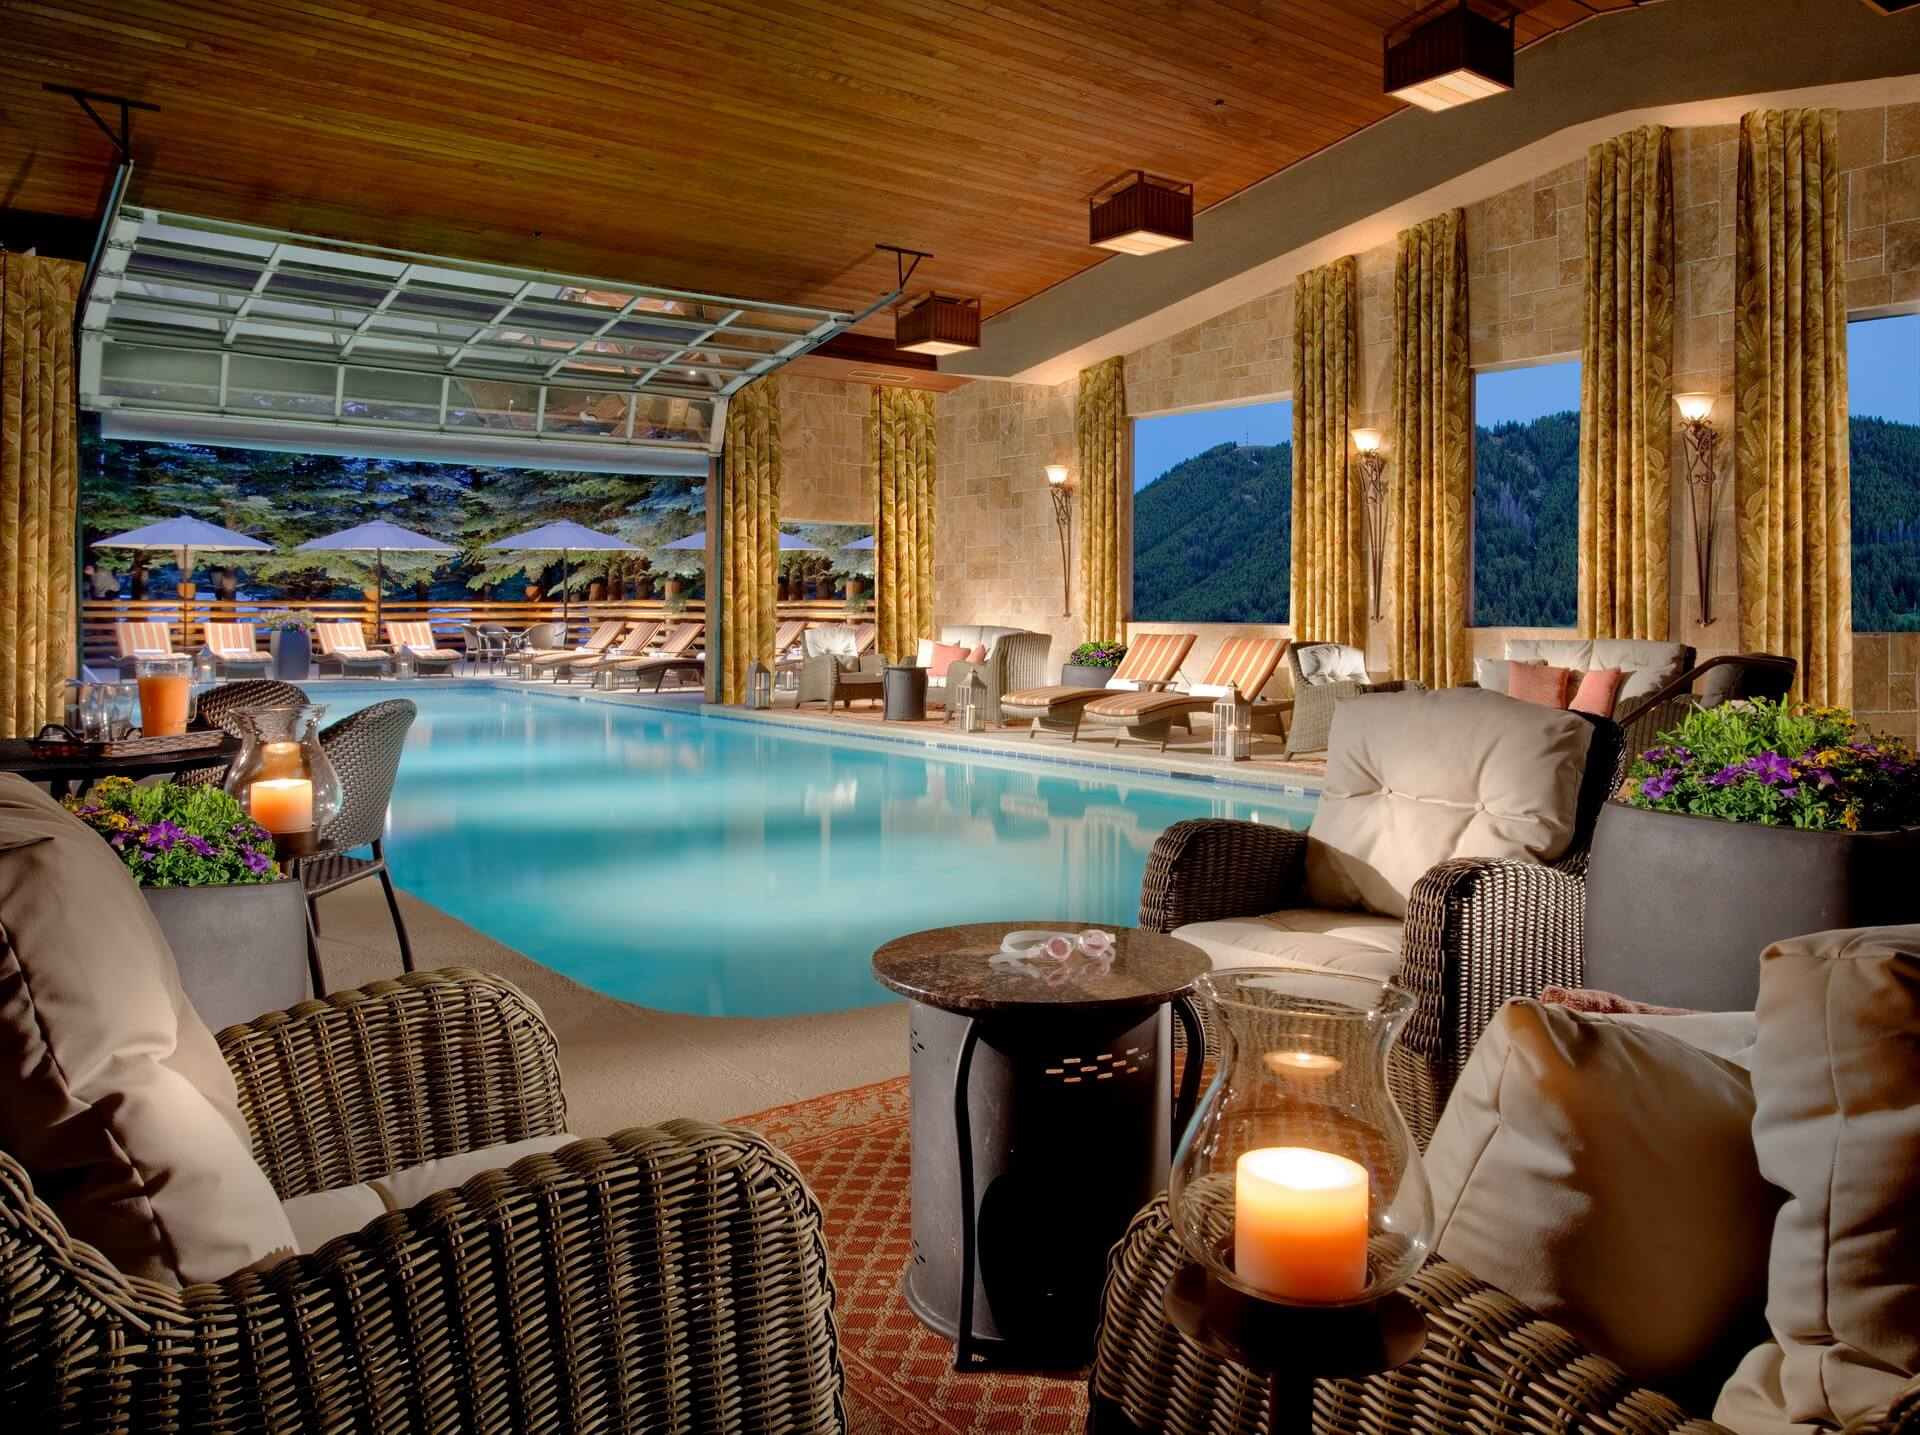 The Lodge at Jackson Hole | Luxury Hotel and Spa in Jackson Hole